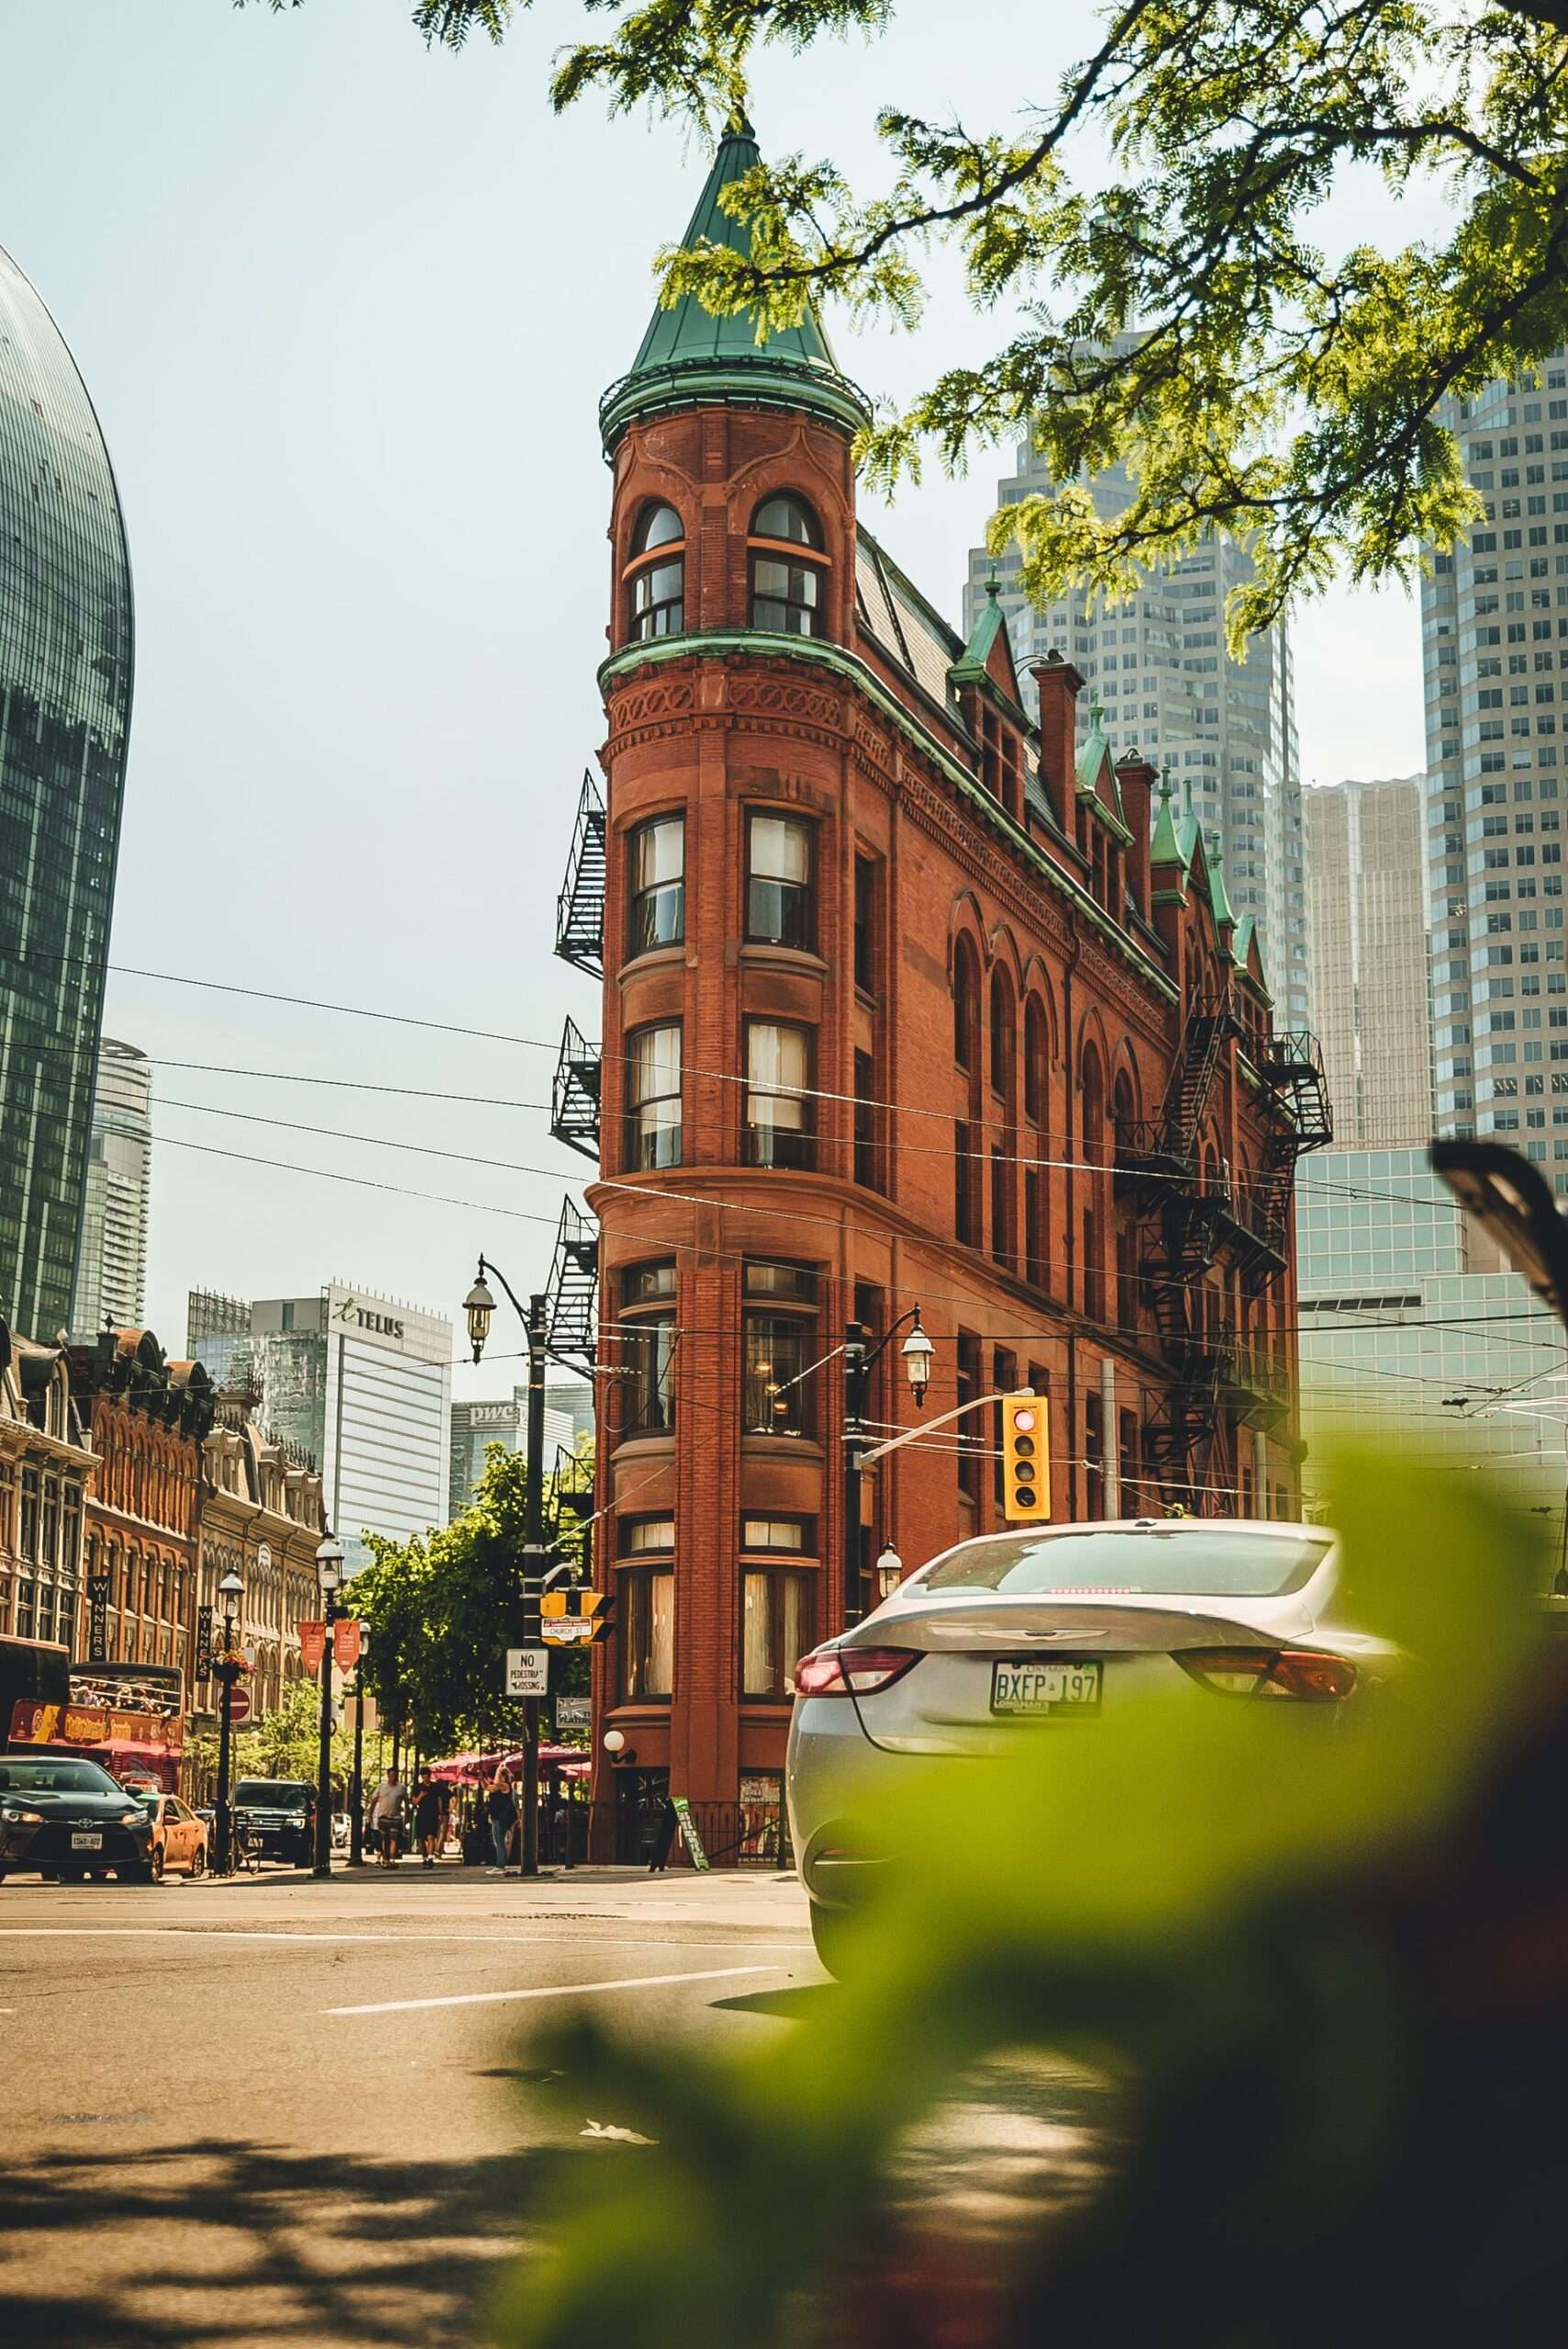 Toronto's godderham Building is an architectural attraction in St.Lawrence Market